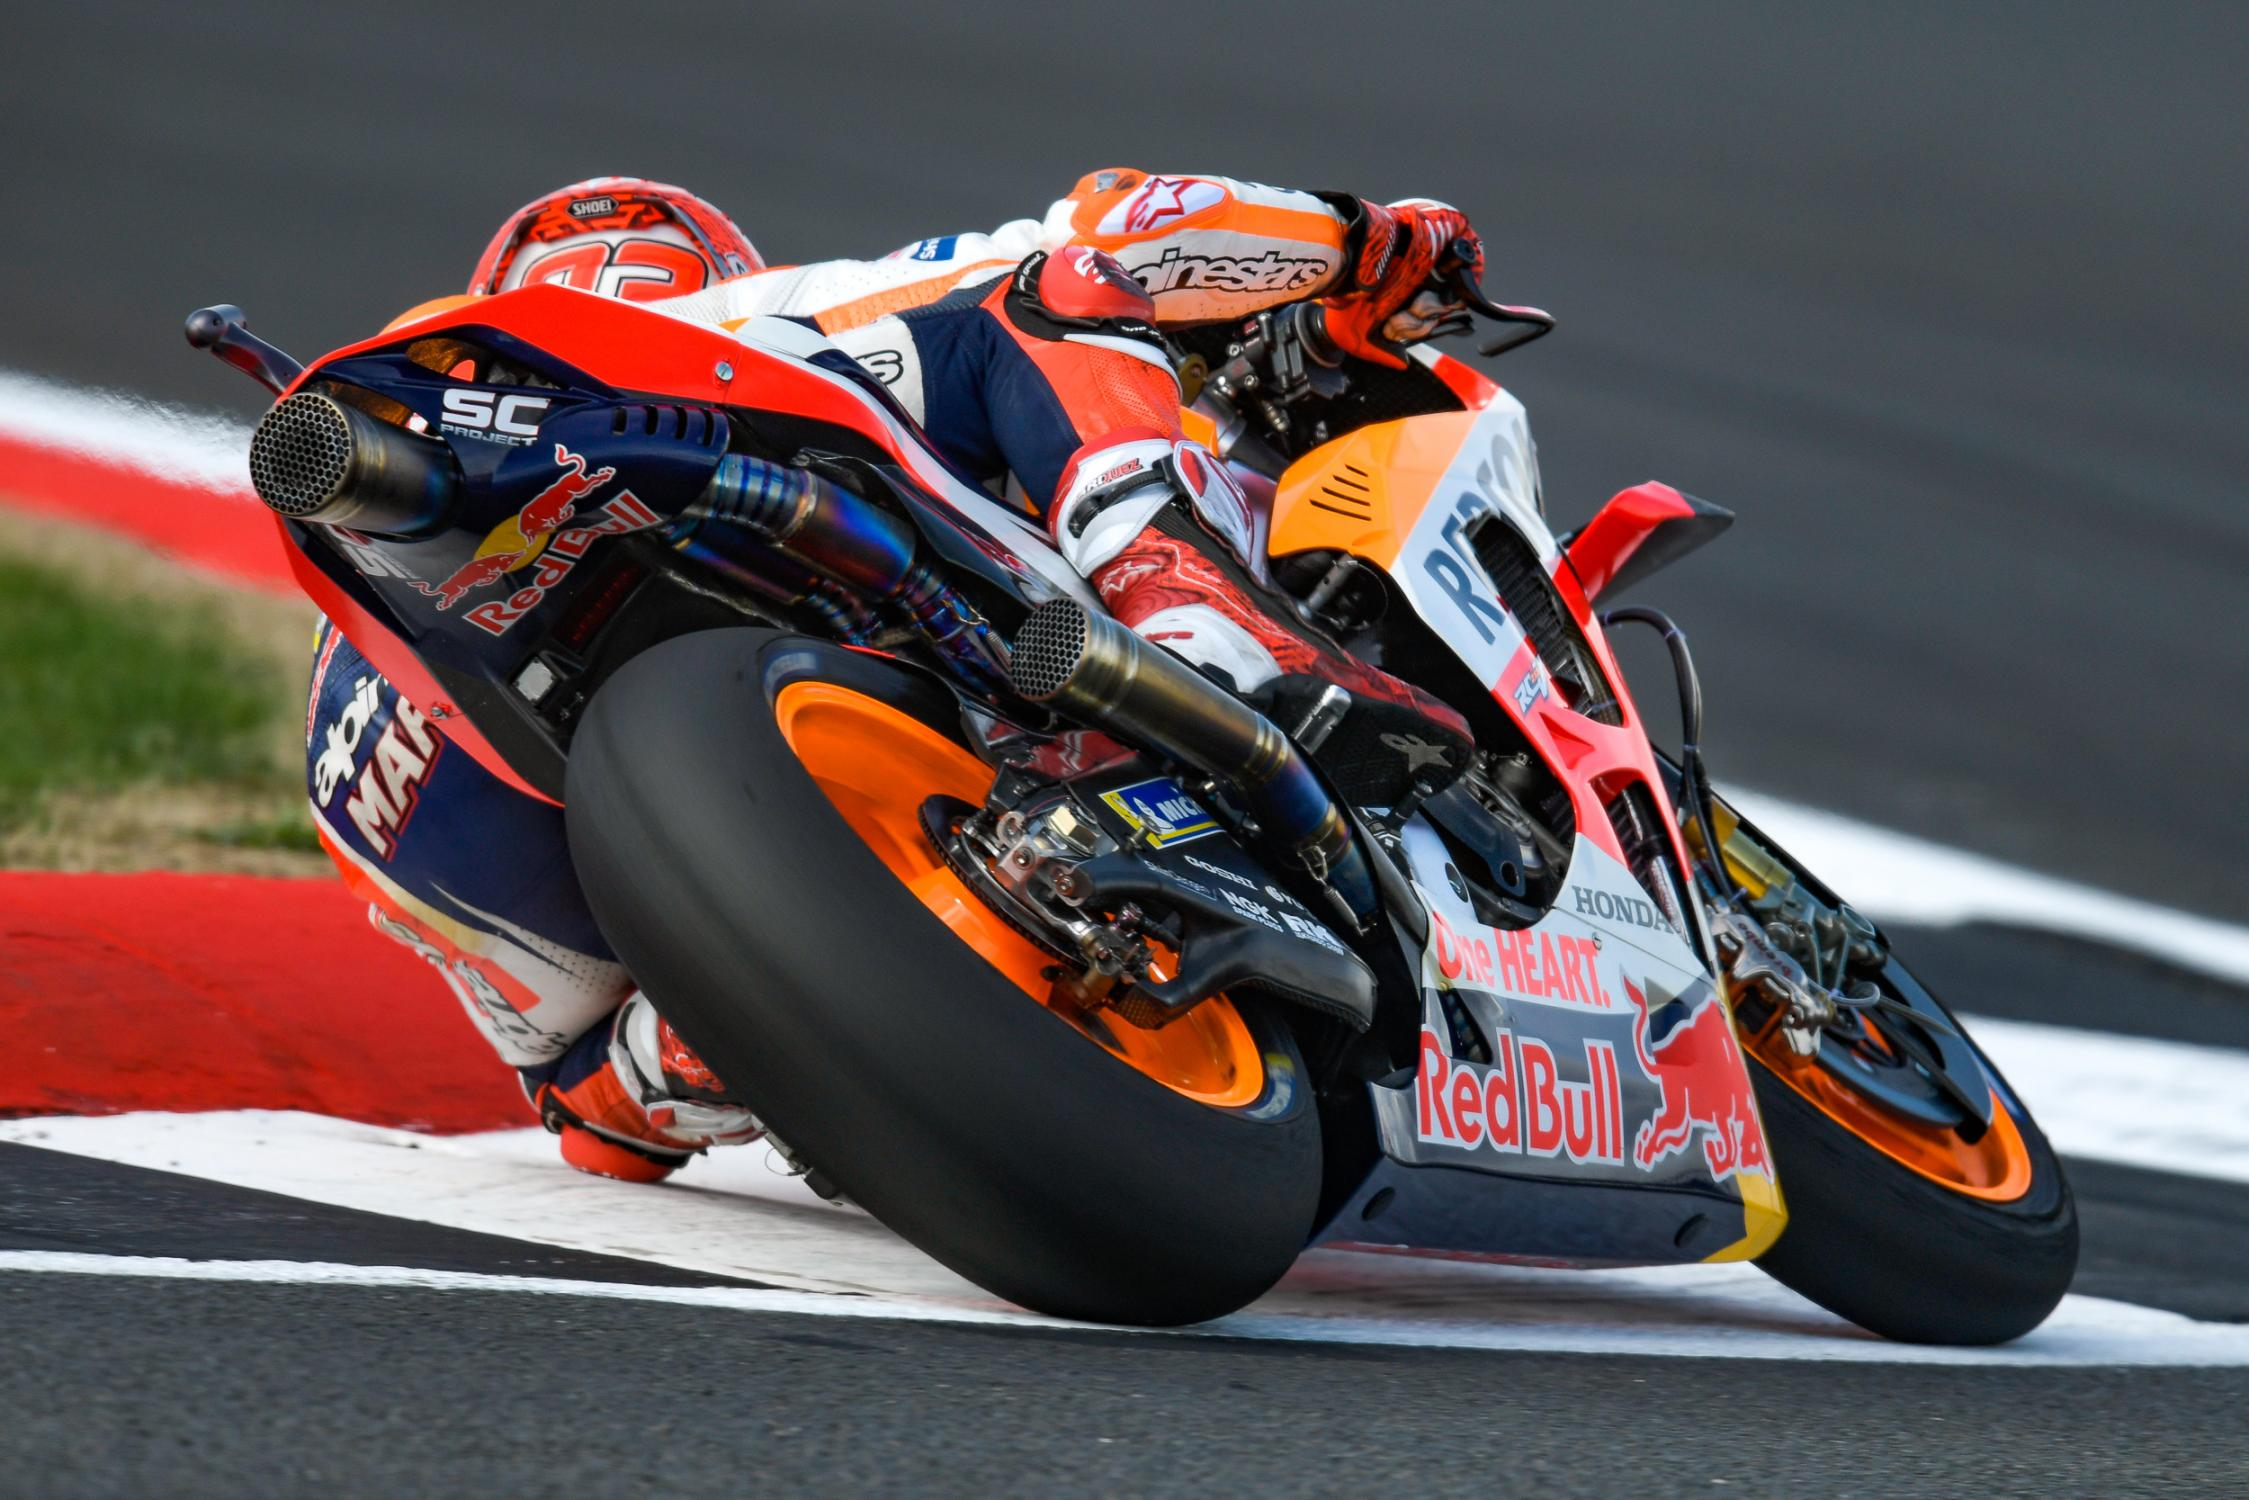 93-marc-marquez-esp_dsc2485.gallery_full_top_fullscreen.jpg